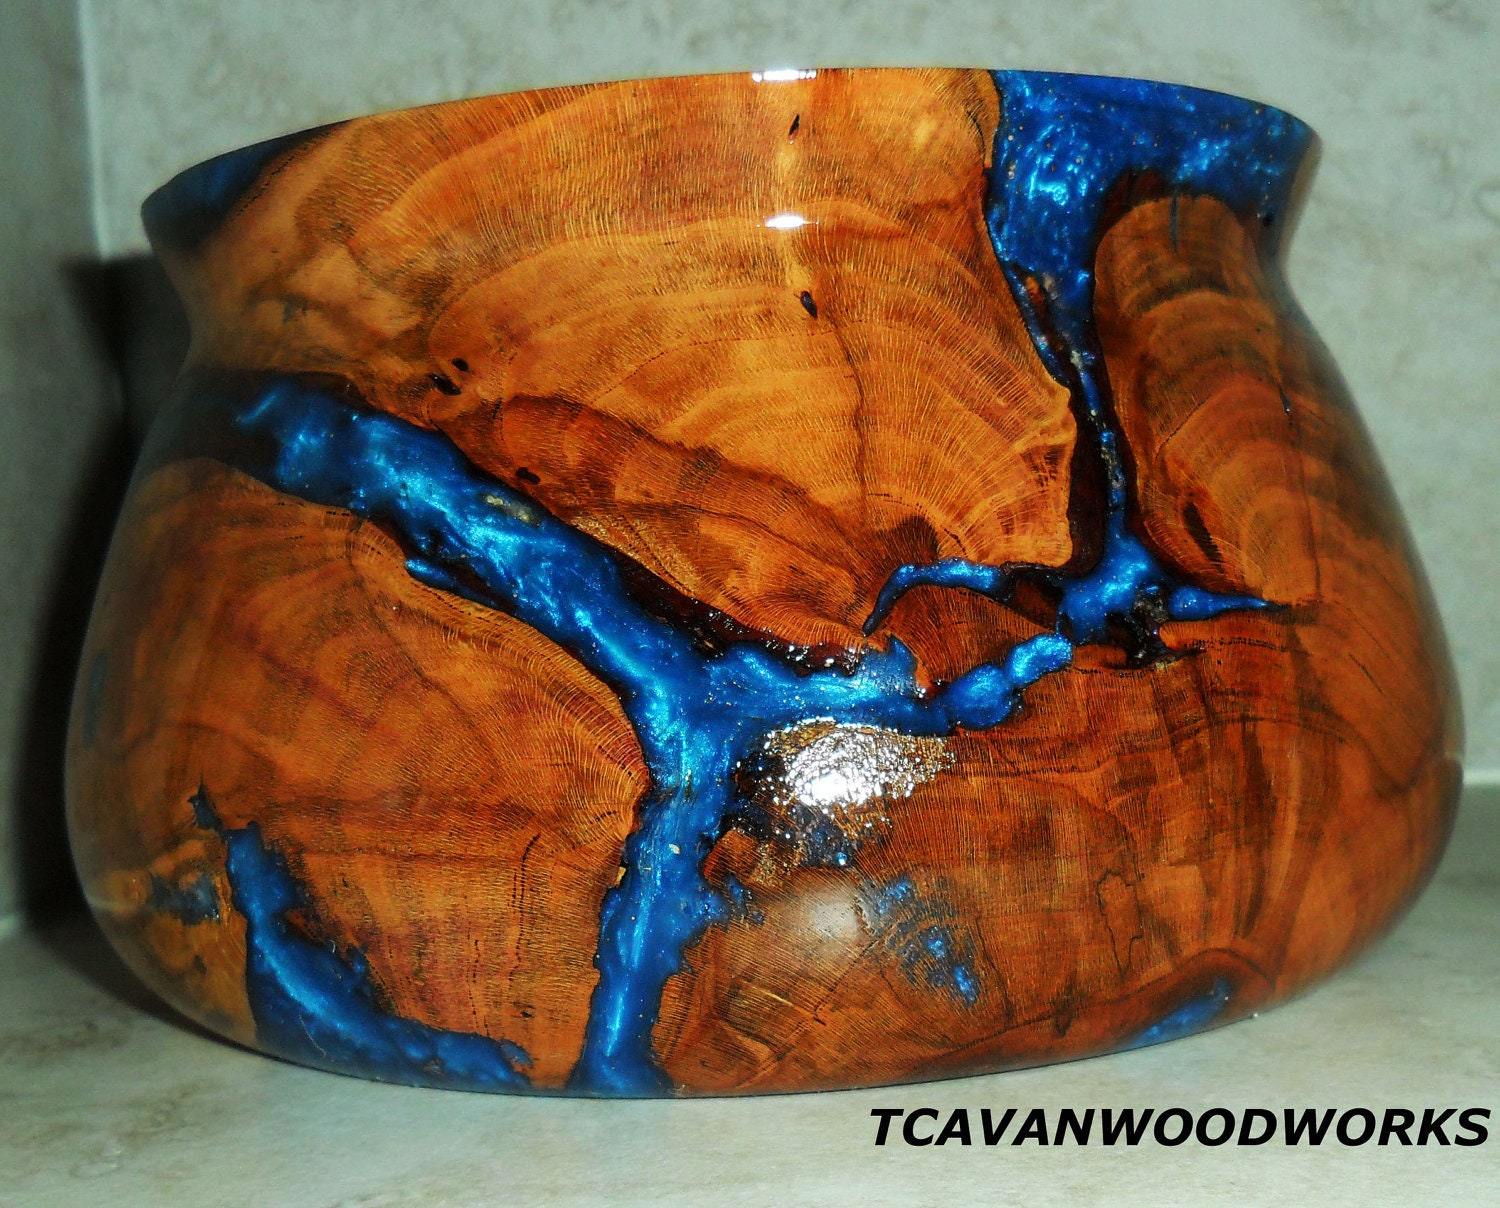 Wood Bowl Hand Turned Plum Wood Inlaid With Blue And Pink